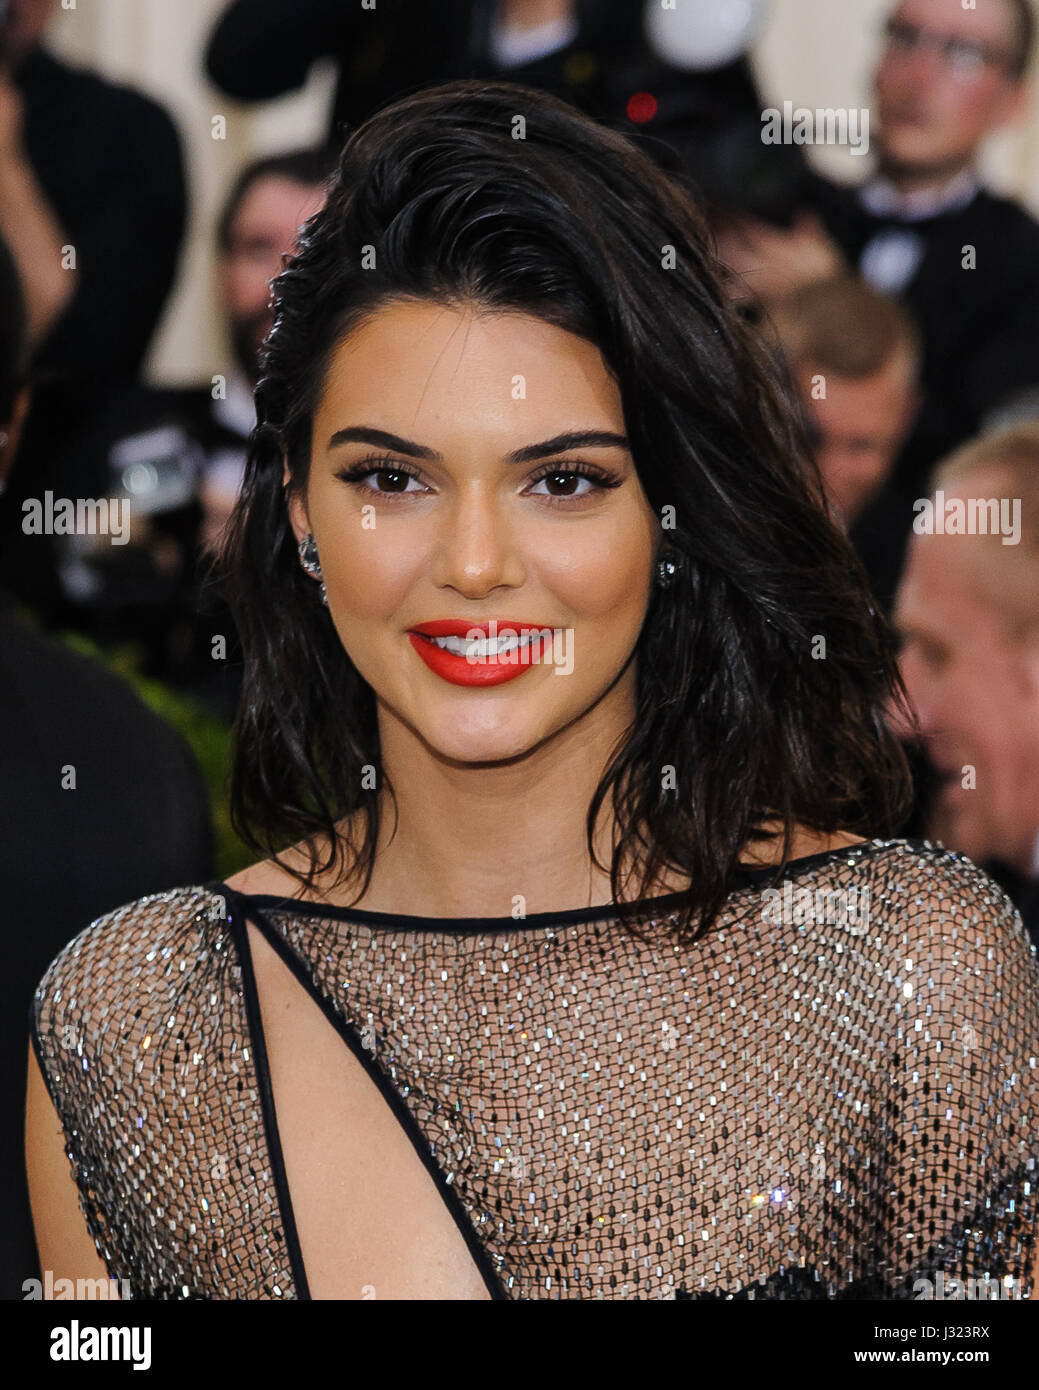 New York, NY, USA. 1st May, 2017. Kendall Jenner. 2017 Metropolitan Museum of Art Costume Institute Benefit Gala - Stock Image